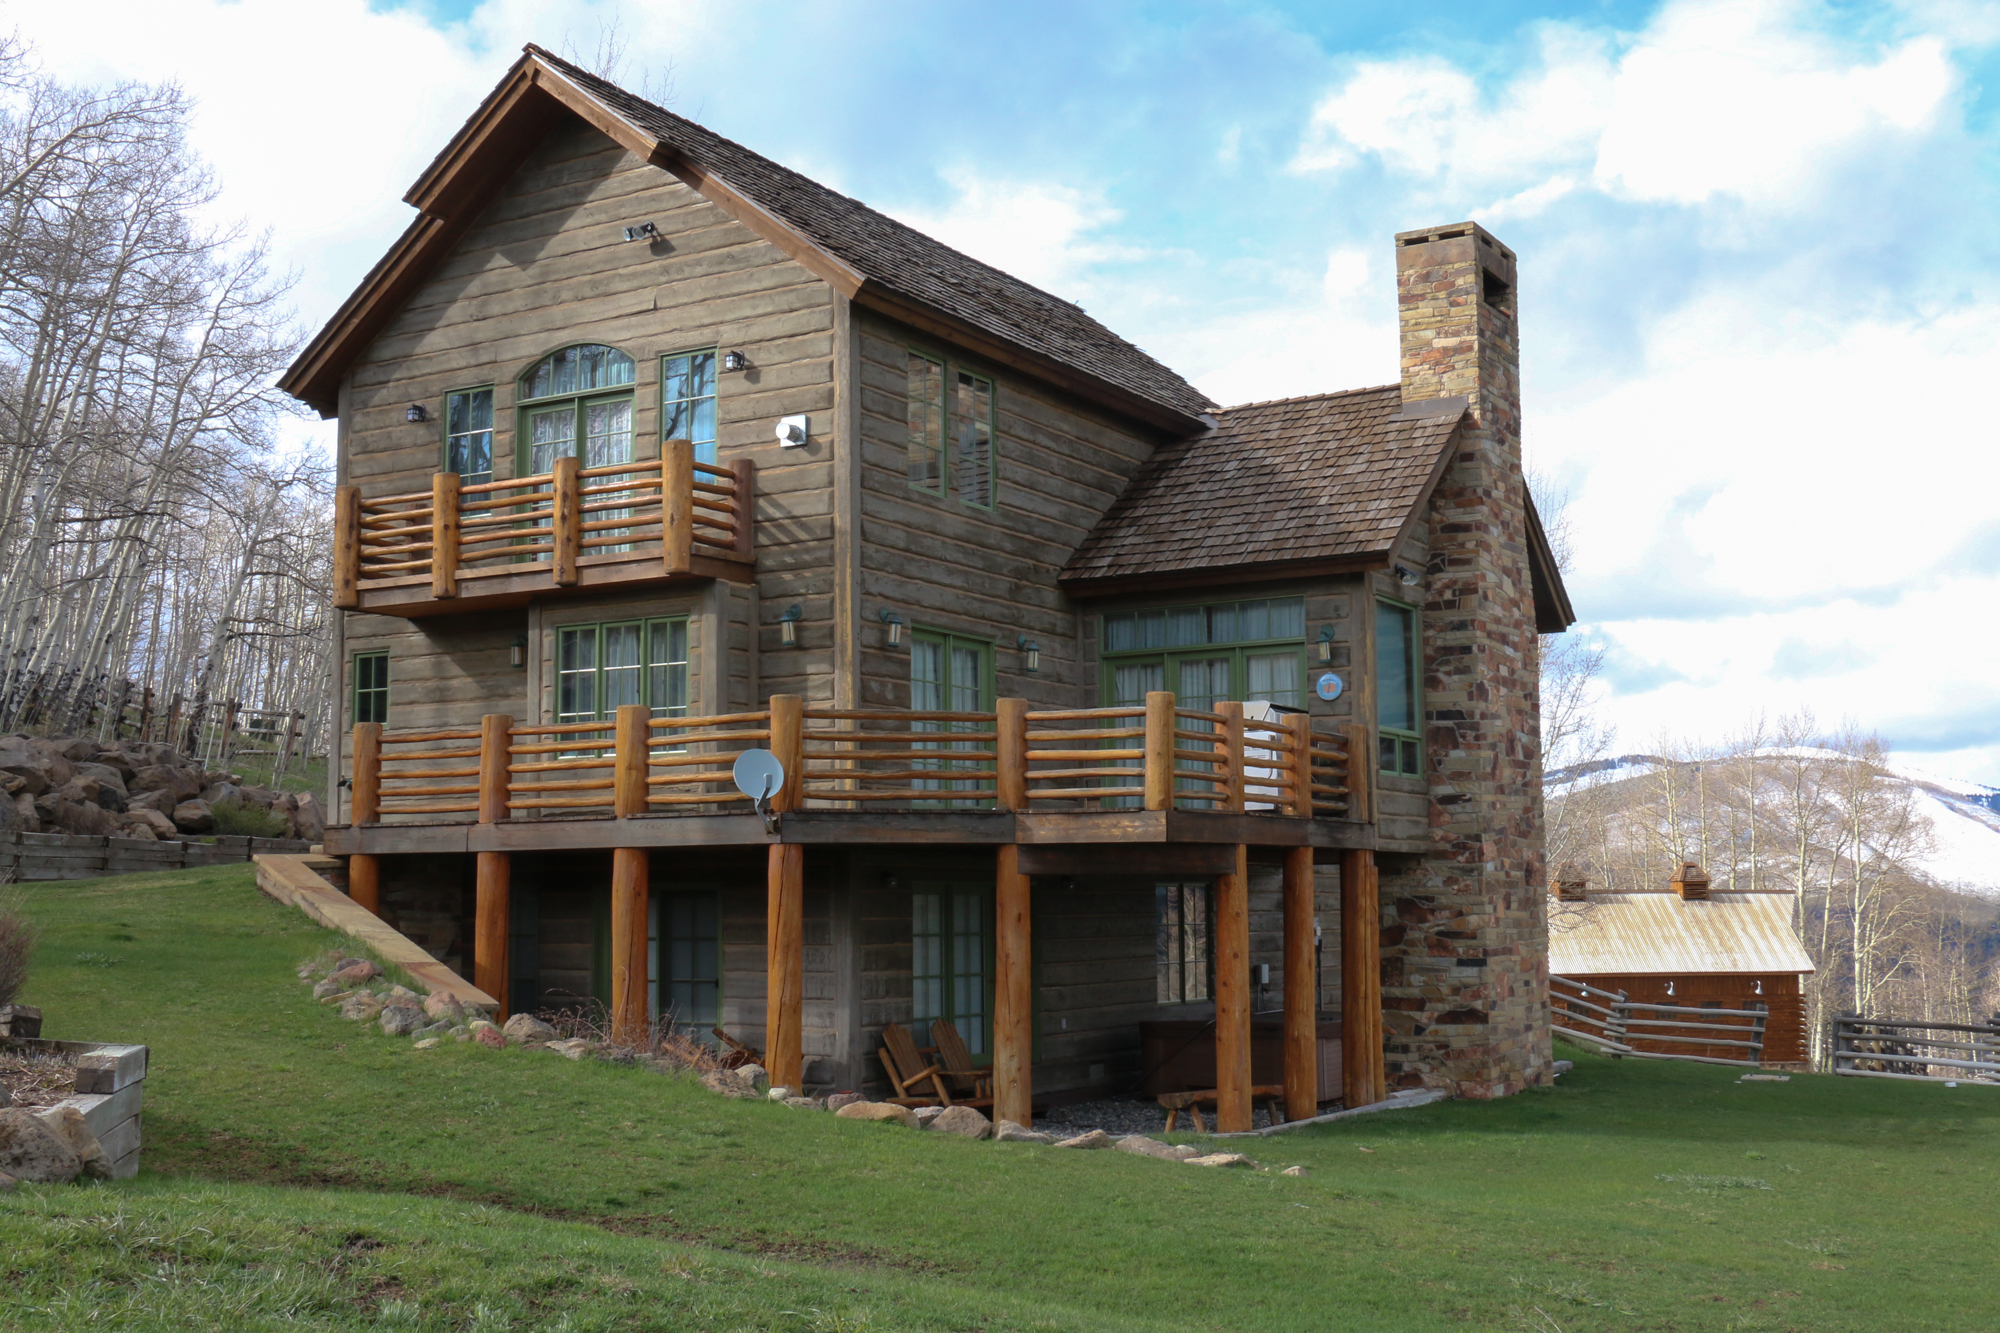 Single Family Home for Sale at Ranch on Red Mountain 455 Oversteeg Gulch Road Crested Butte, Colorado 81224 United States